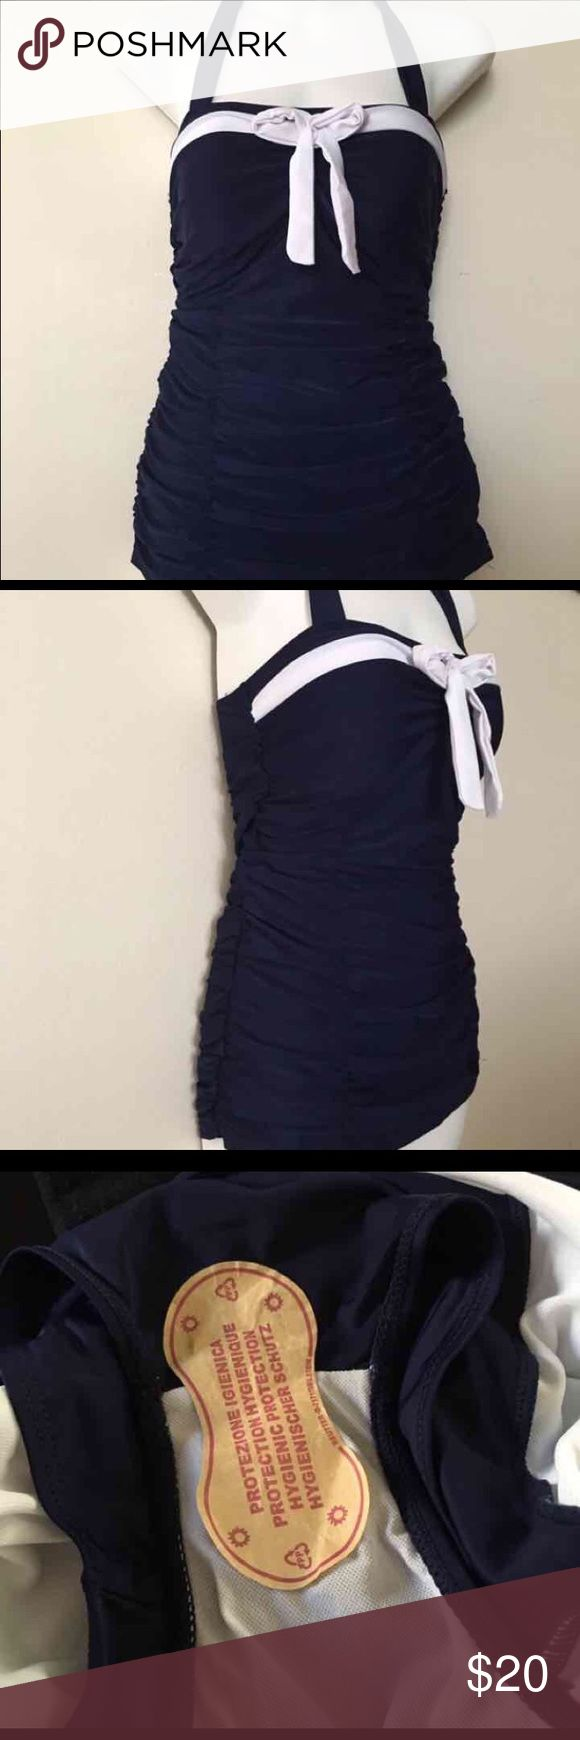 NWOT vintage sailor style bathing suit Too small for me, never worn. Tag says XL but best fits small-medium. Hygienic lining still attached. Pin up, sailor, vintage style Swim One Pieces